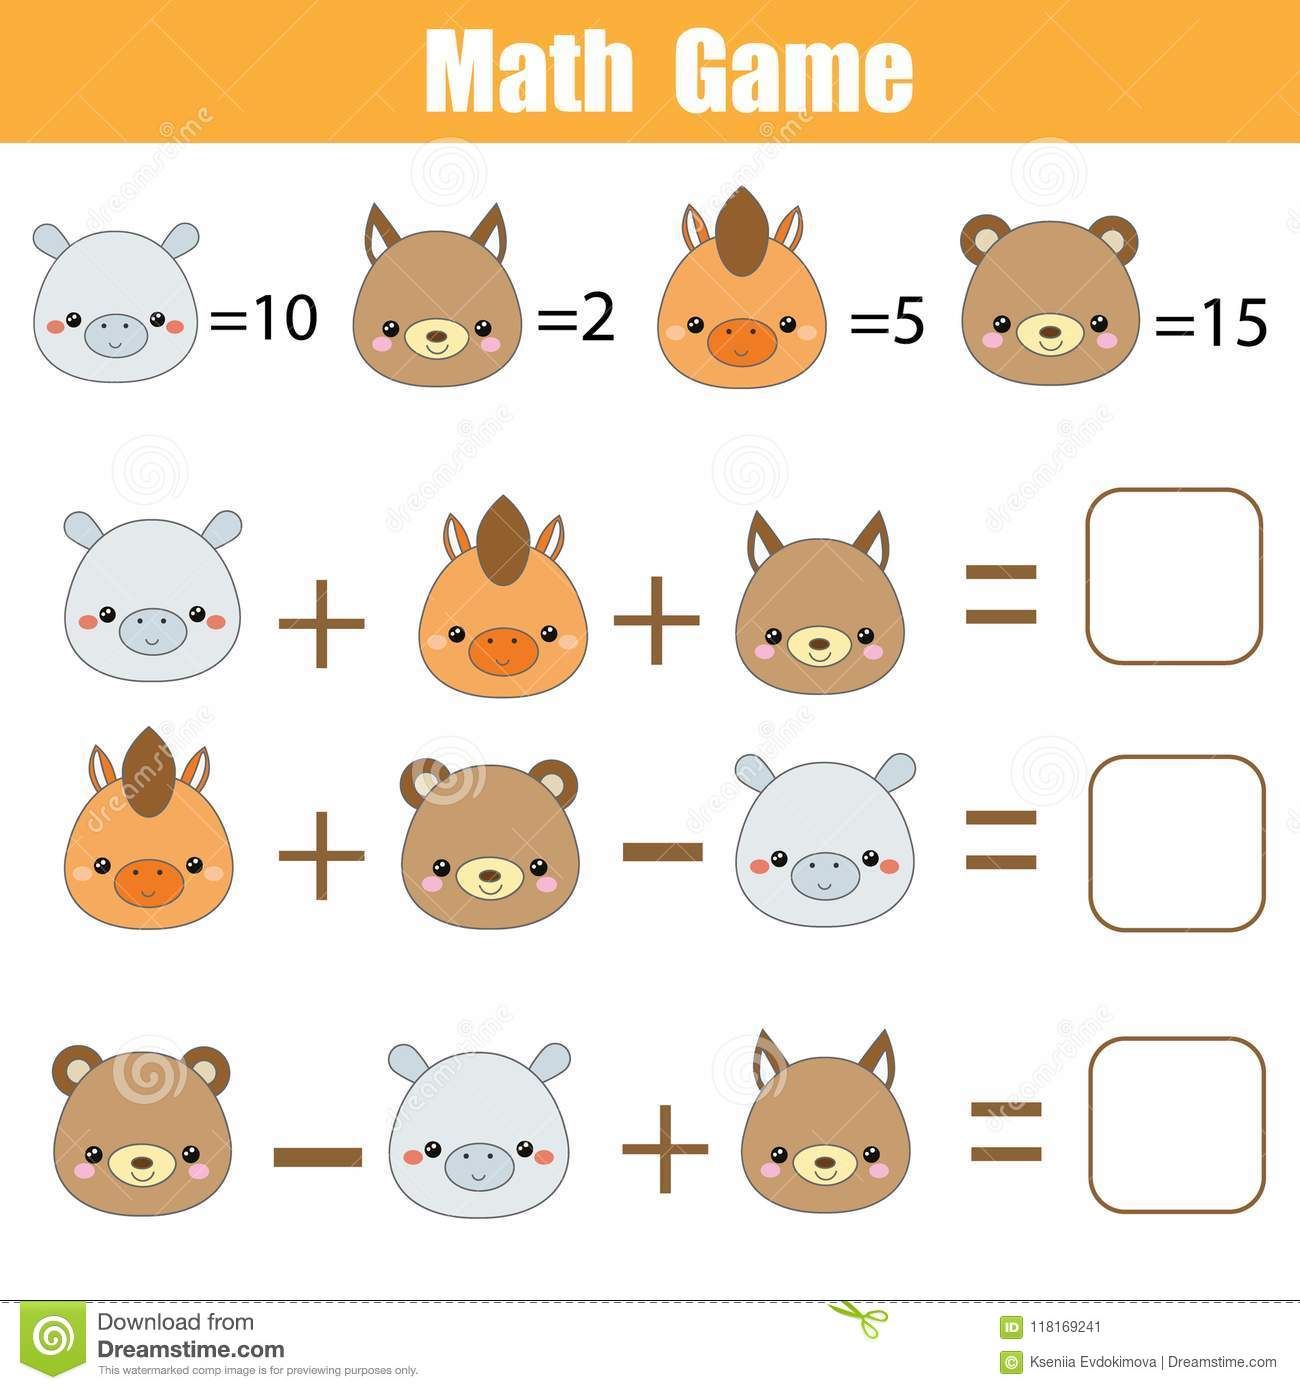 Math Educational Game Counting Equations Mathematics Worksheet For